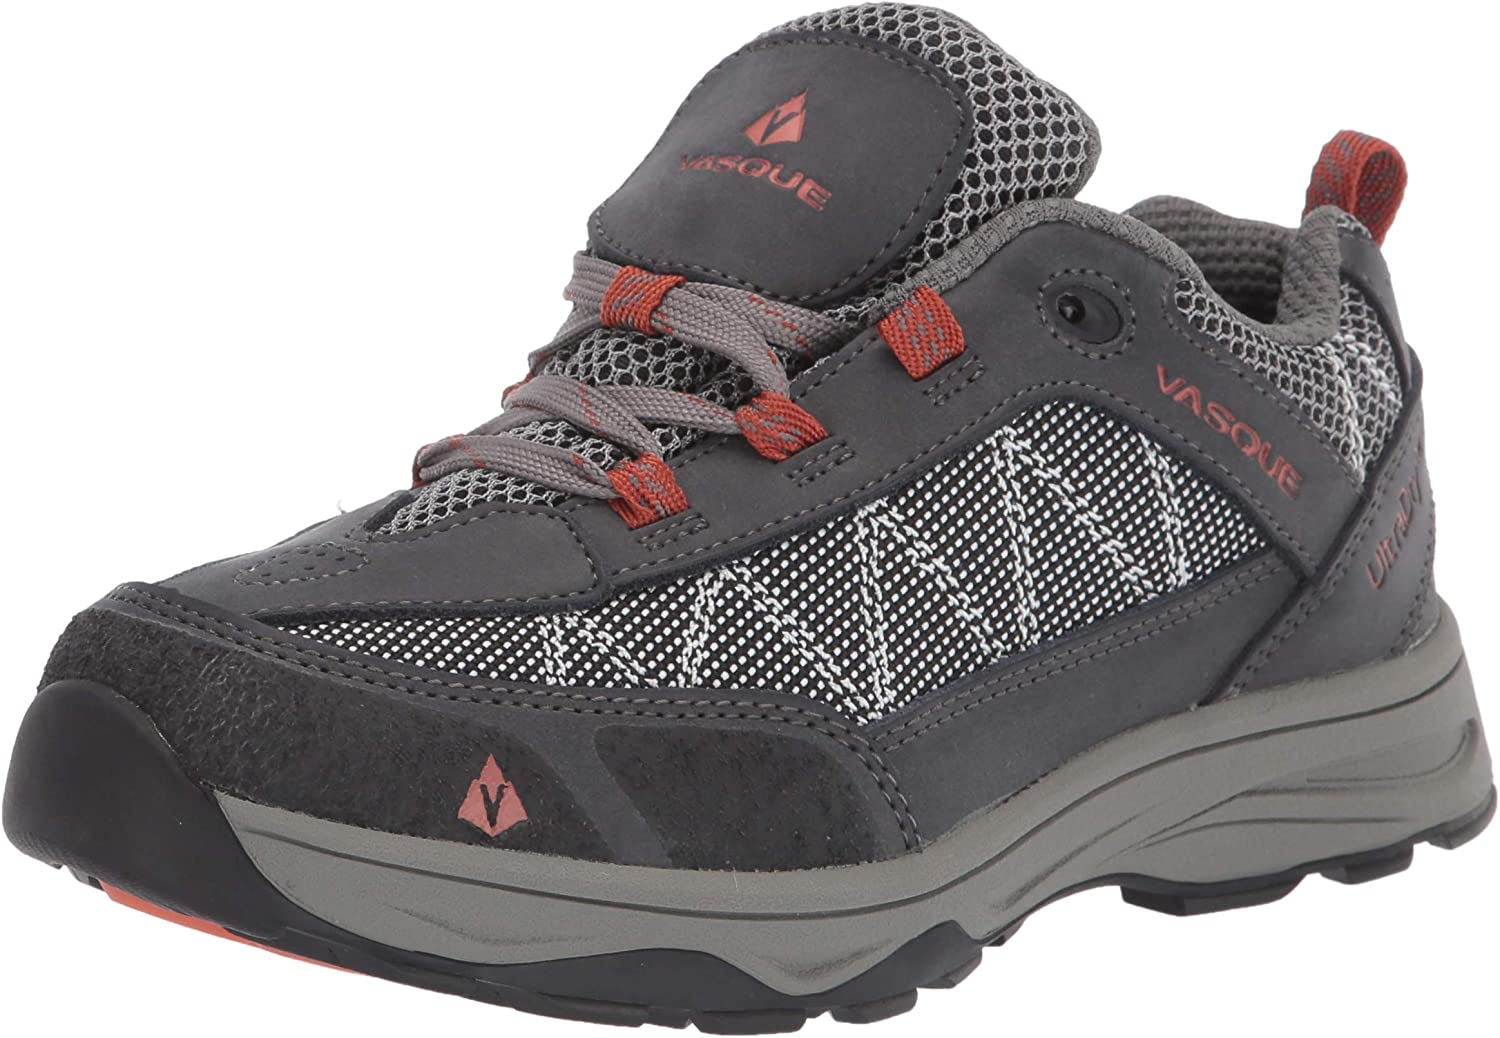 Sales for sale Vasque online shopping Kid's Monolith Low Shoes UltraDry Hiking